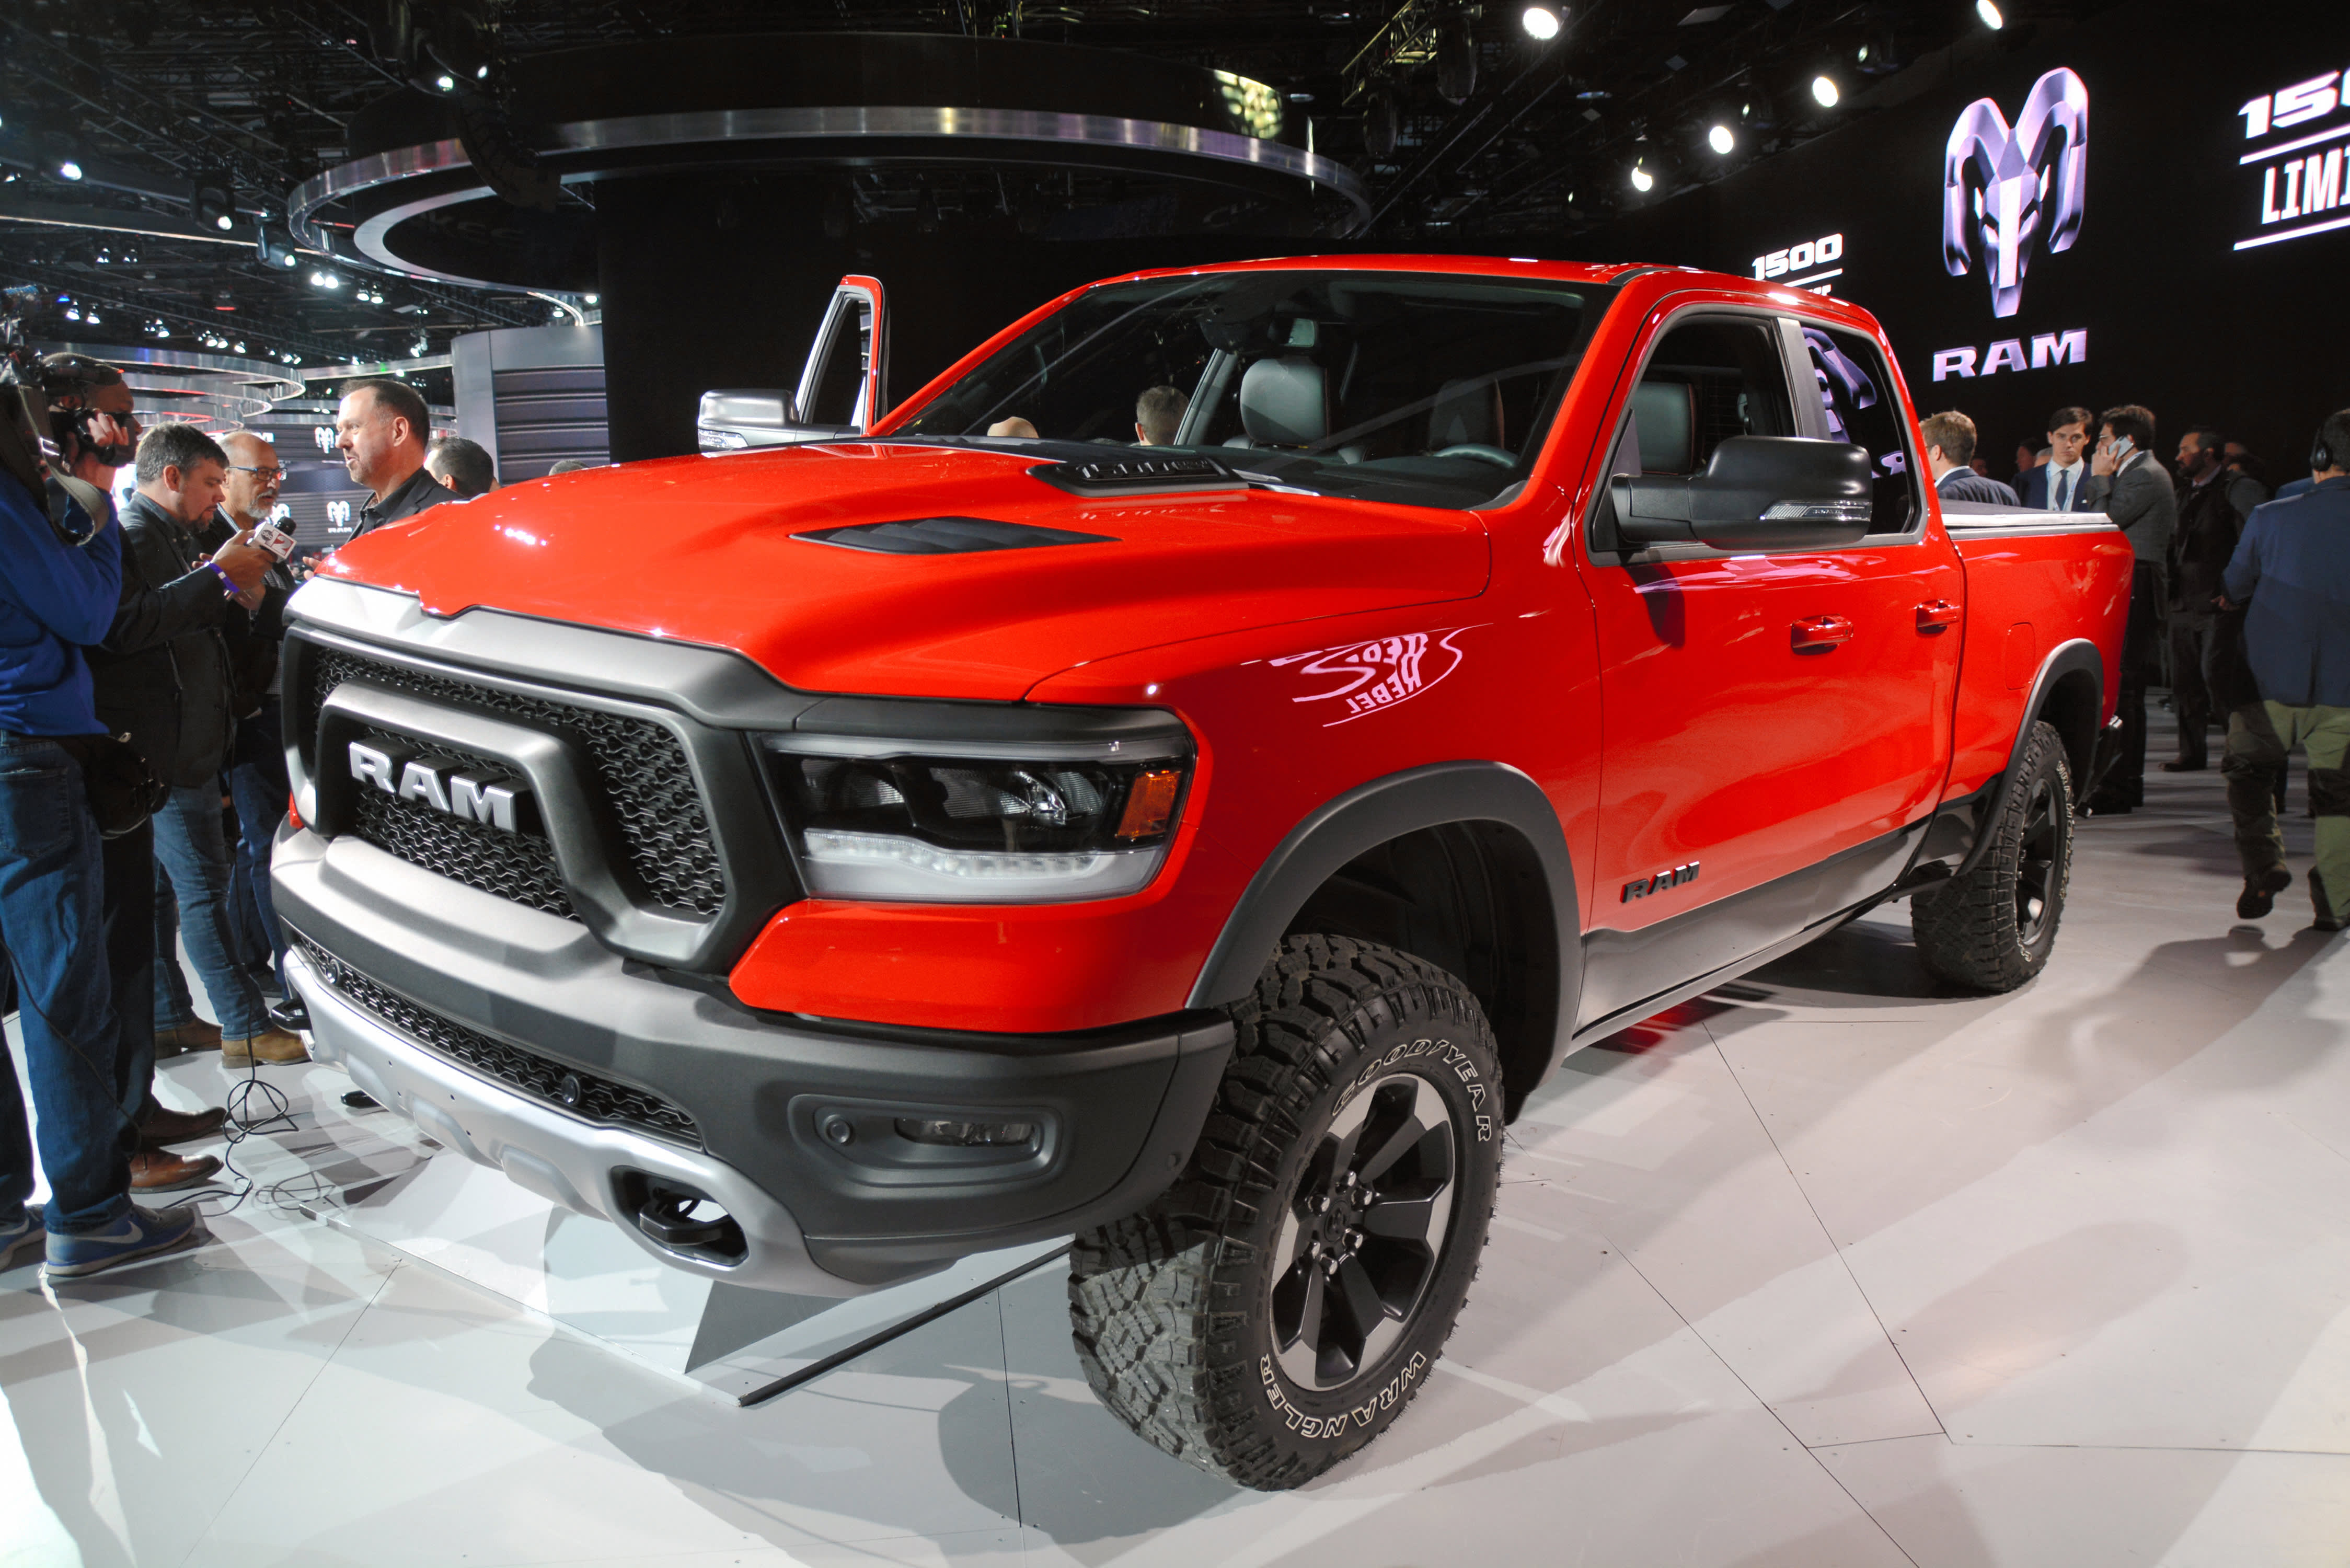 Fiat Chrysler falls 4% after Goldman initiates at sell, citing North American growth struggles